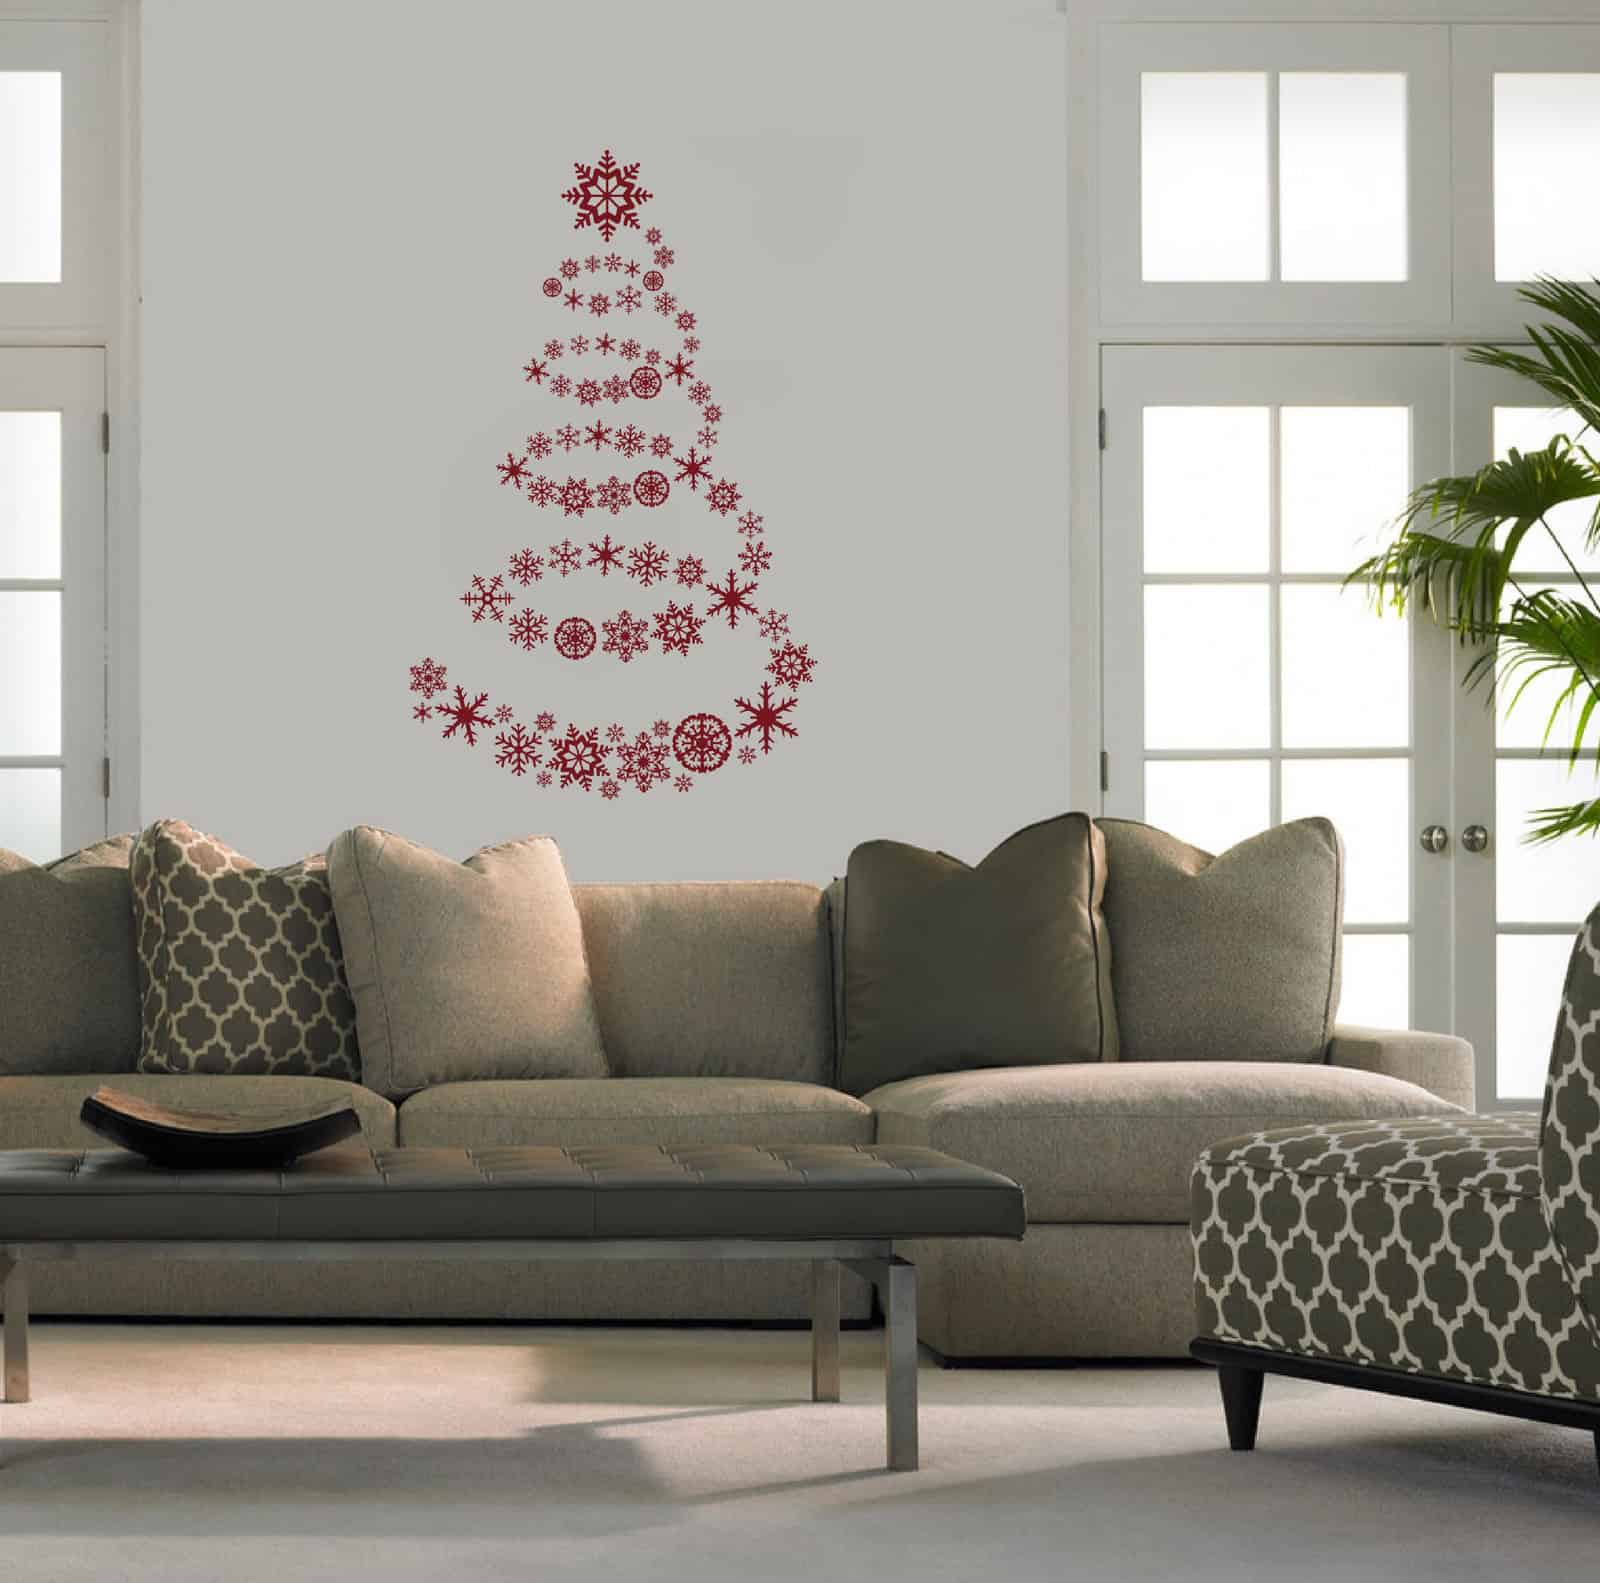 Ice Crystal Tree Living2 room sticker